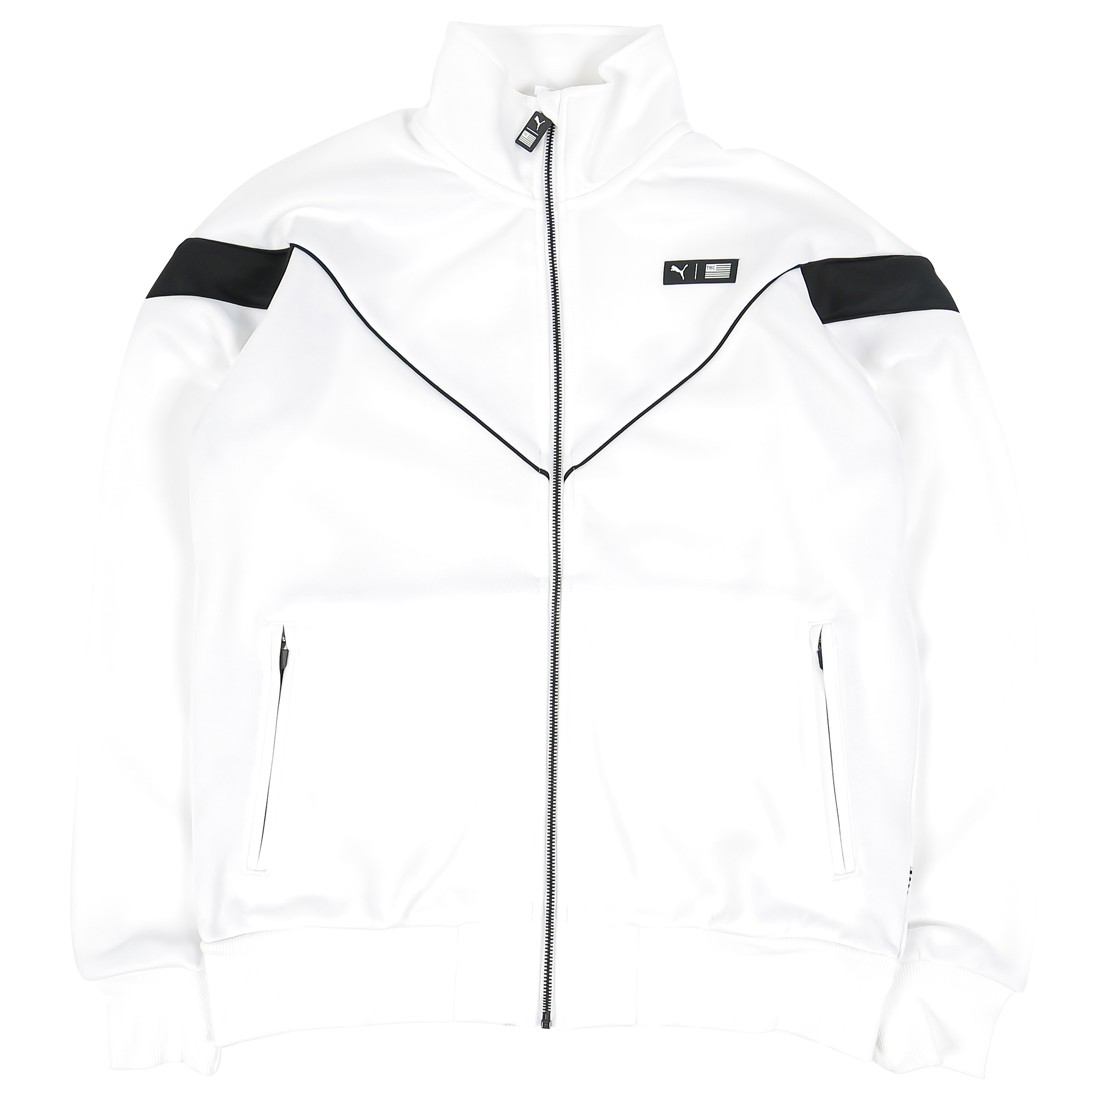 Puma x The Marathon Continues Men MCS Track Jacket (white / black)